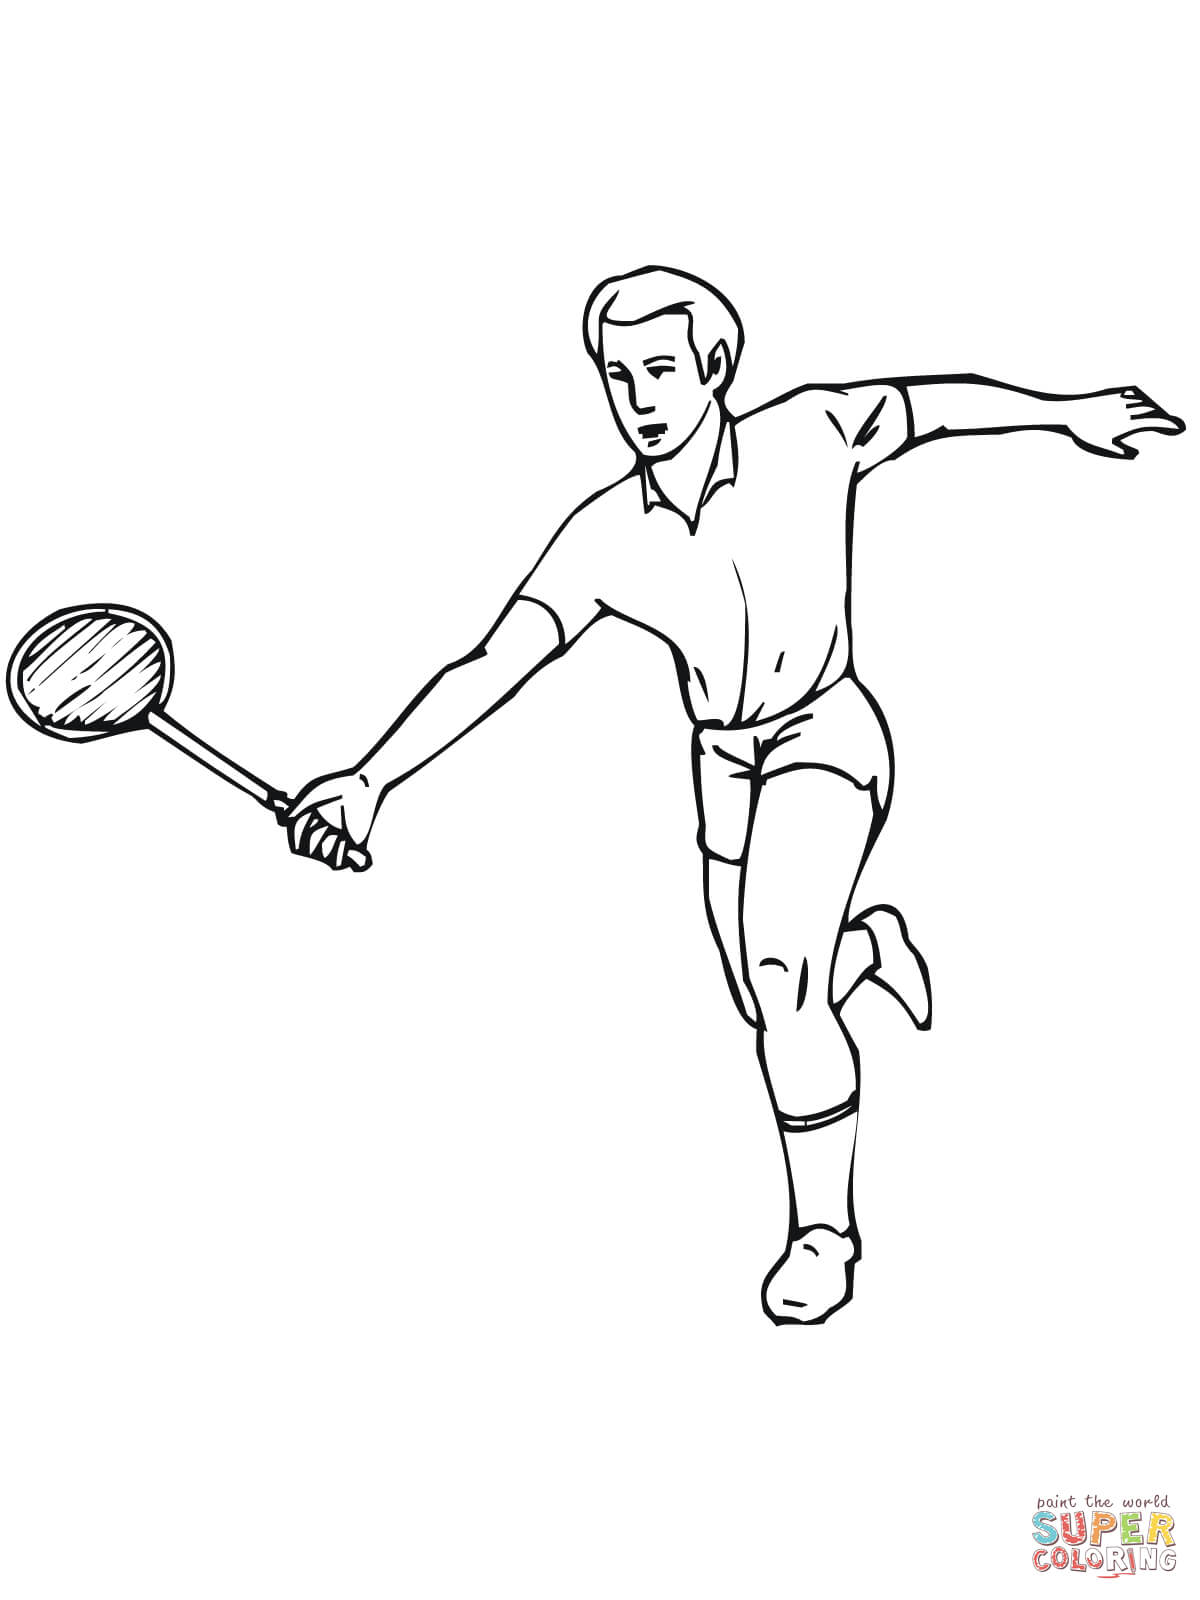 Badminton clipart colouring page, Badminton colouring page